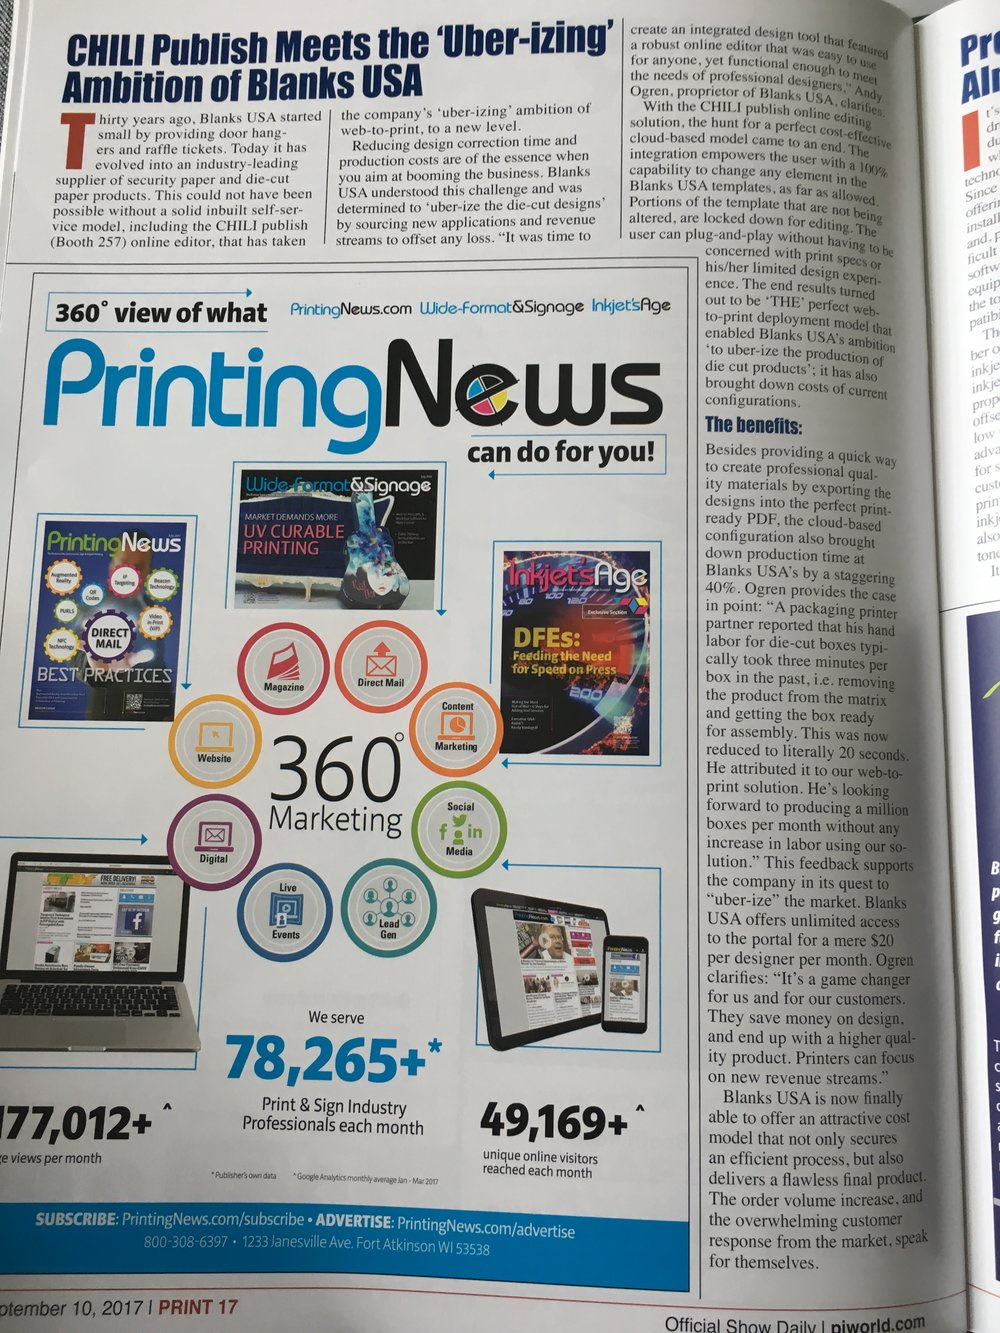 Blanks USA featured in first #print 17 Daily edition.